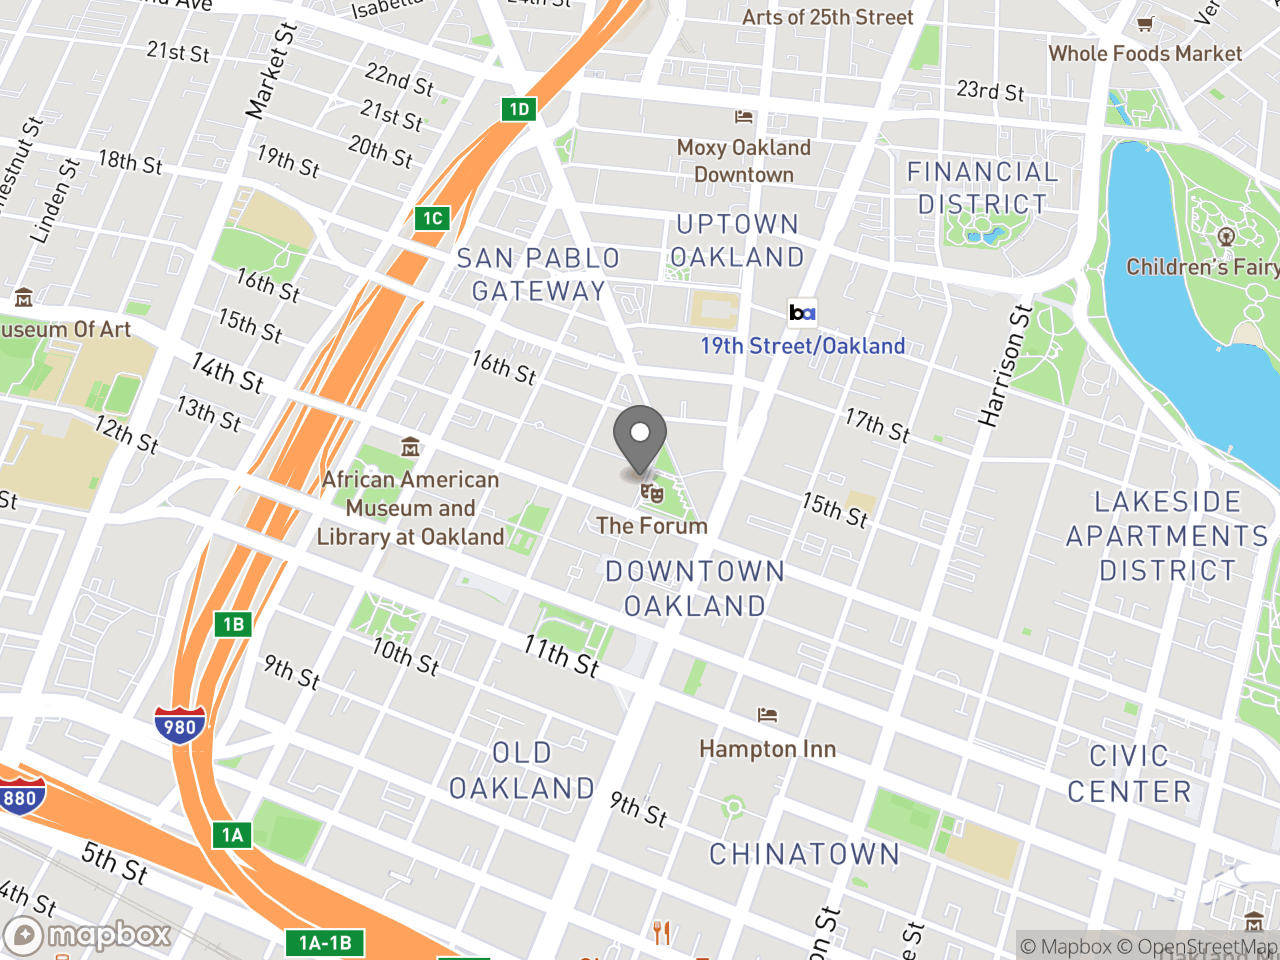 Map location for March 6, 2019 Planning Commission Meeting, located at 1 Frank H Ogawa Plaza in Oakland, CA 94612